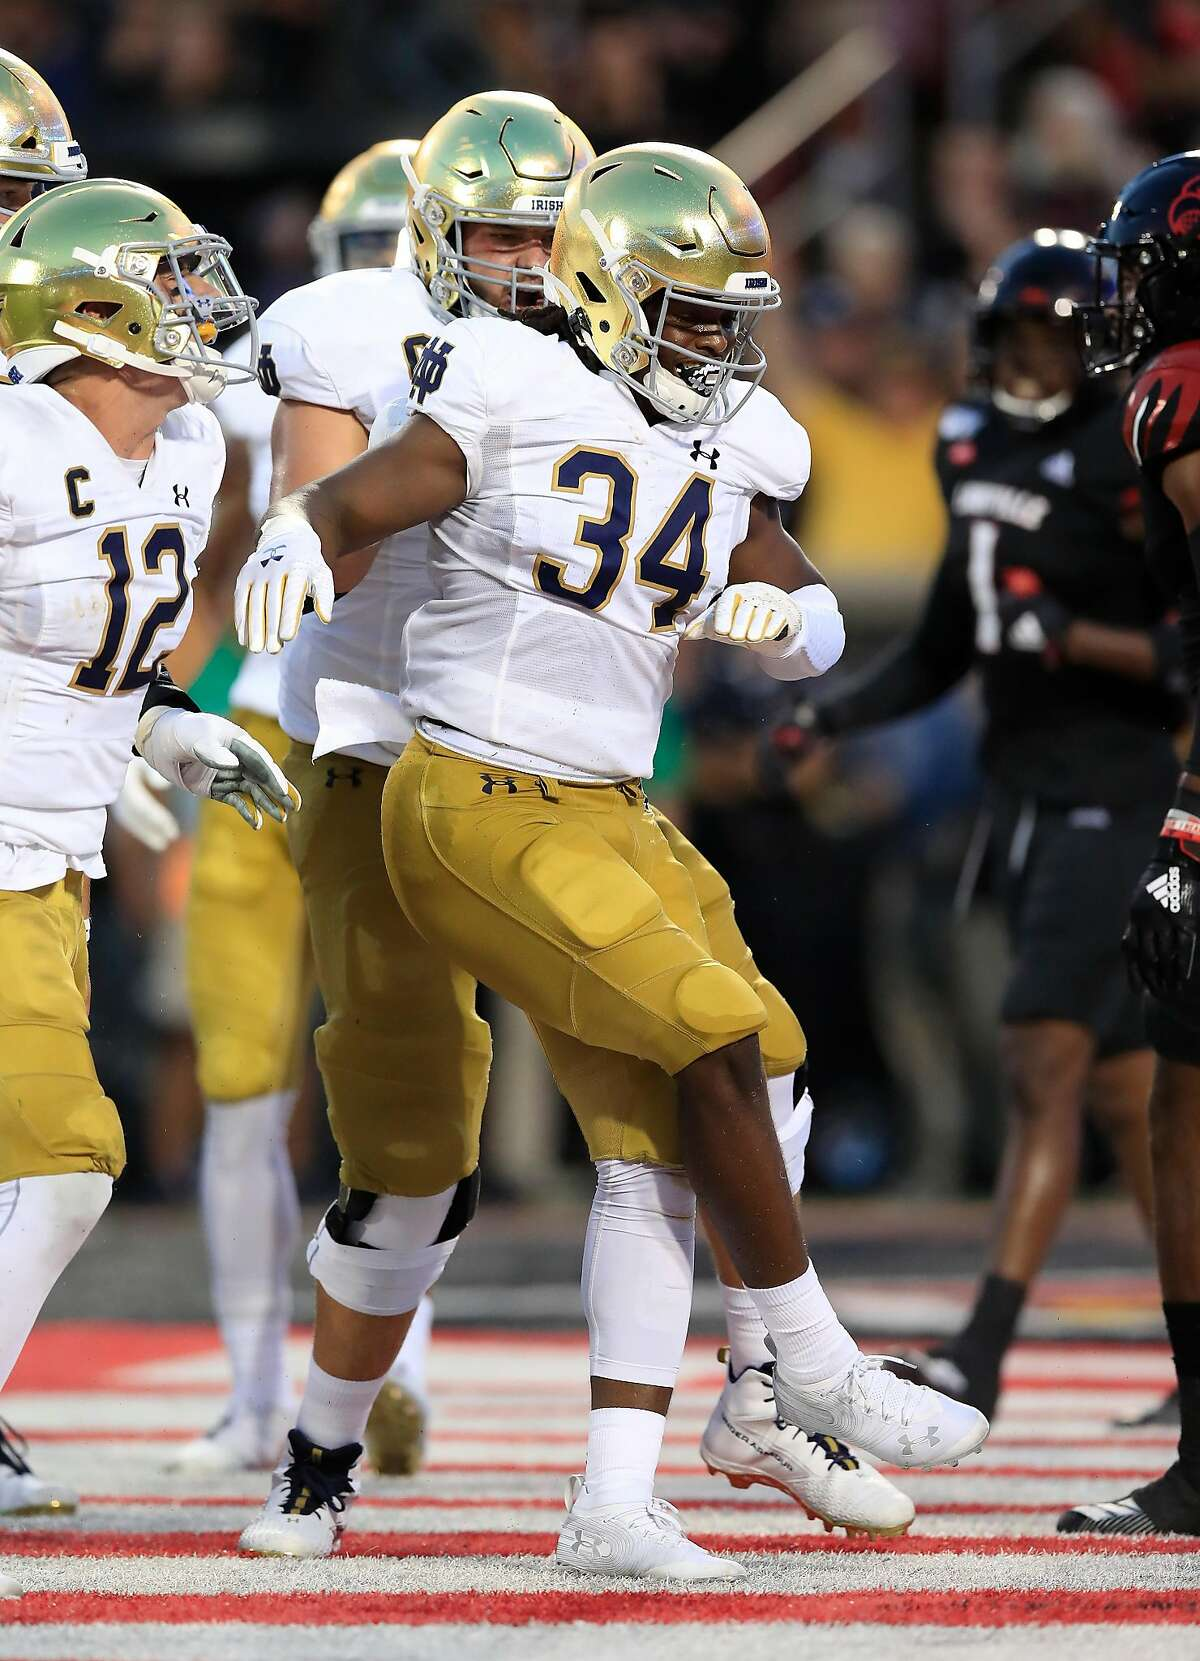 LOUISVILLE, KENTUCKY - SEPTEMBER 02: Jahmir Smith #34 of the Notre Dame Fighting Irish celebrates after scoring a touchdown against the Louisville Cardinals on September 02, 2019 in Louisville, Kentucky. (Photo by Andy Lyons/Getty Images)